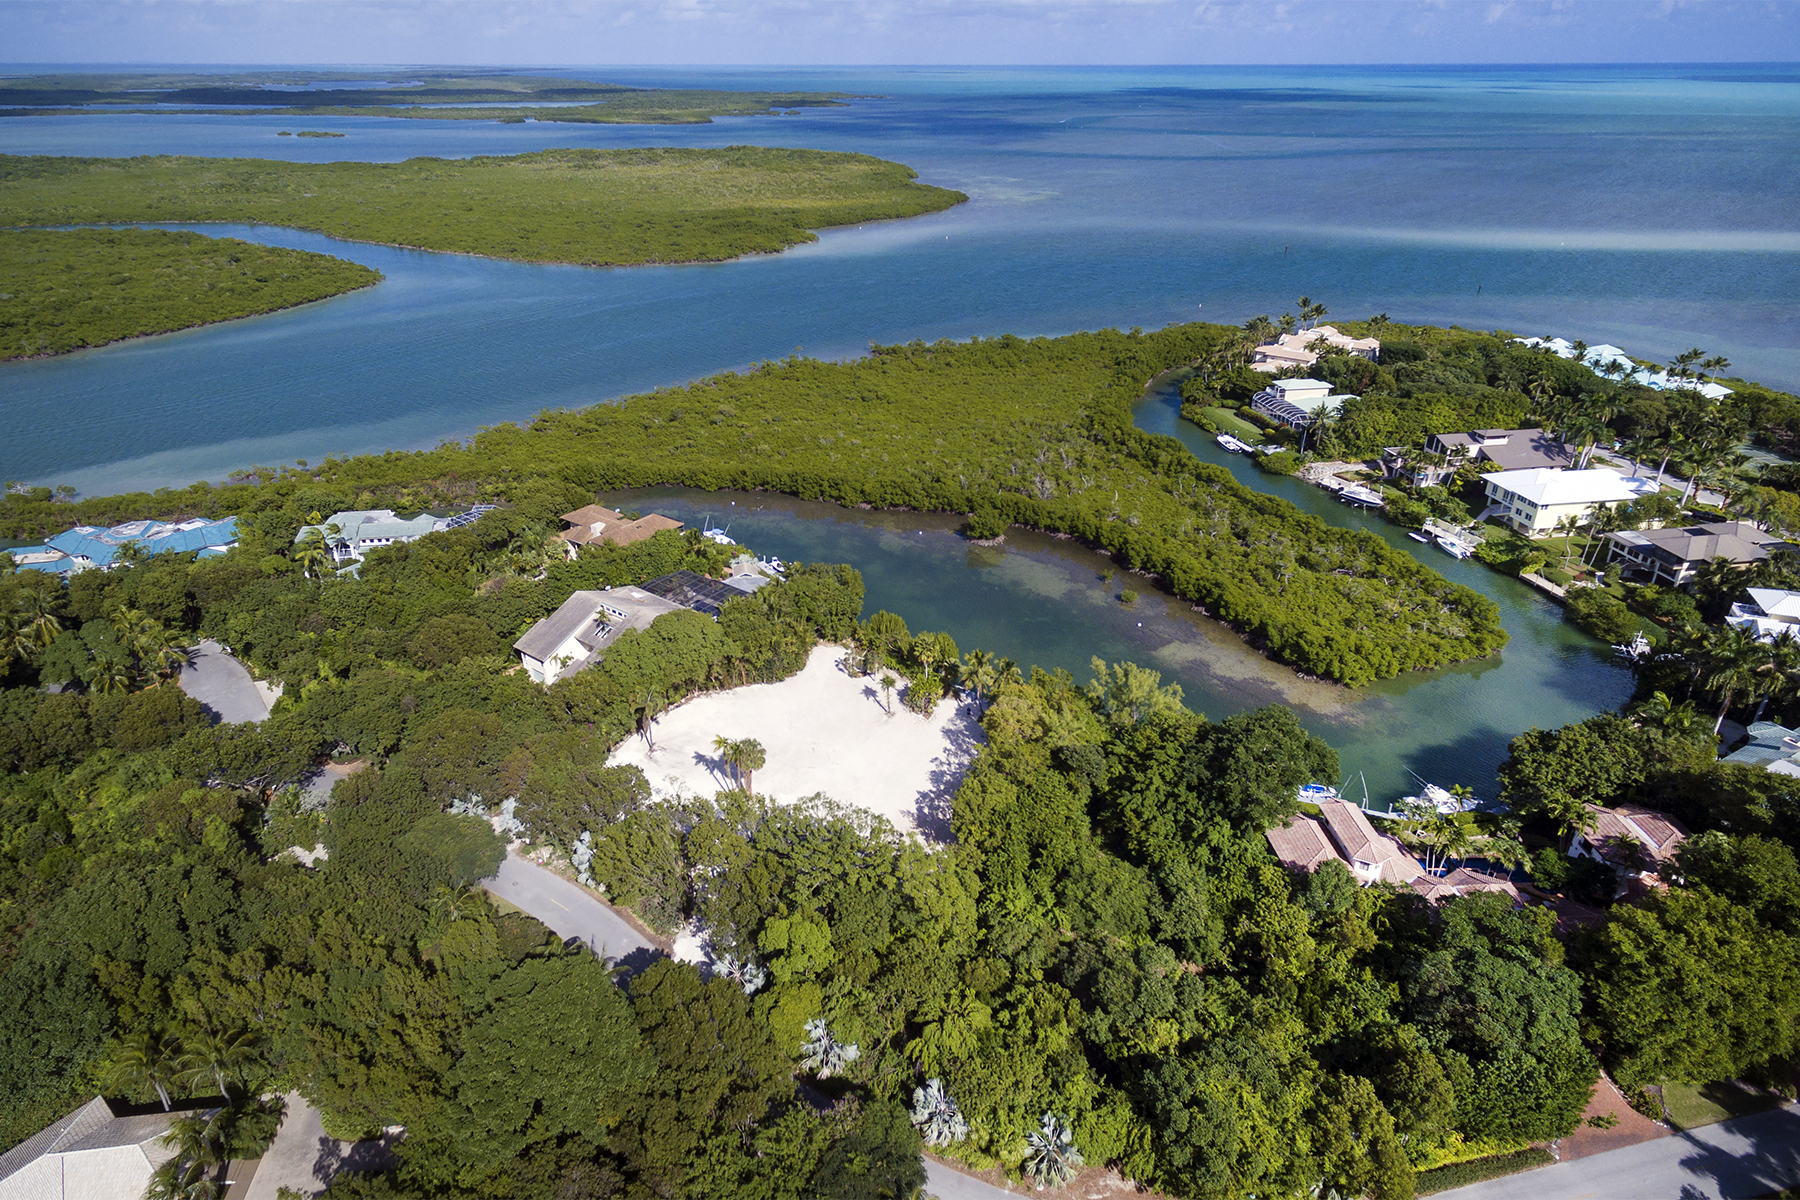 Land für Verkauf beim Expansive Location to Build Your Dream Home at Ocean Reef 40-42 Cardinal Lane, Ocean Reef Community, Key Largo, Florida, 33037 Vereinigte Staaten